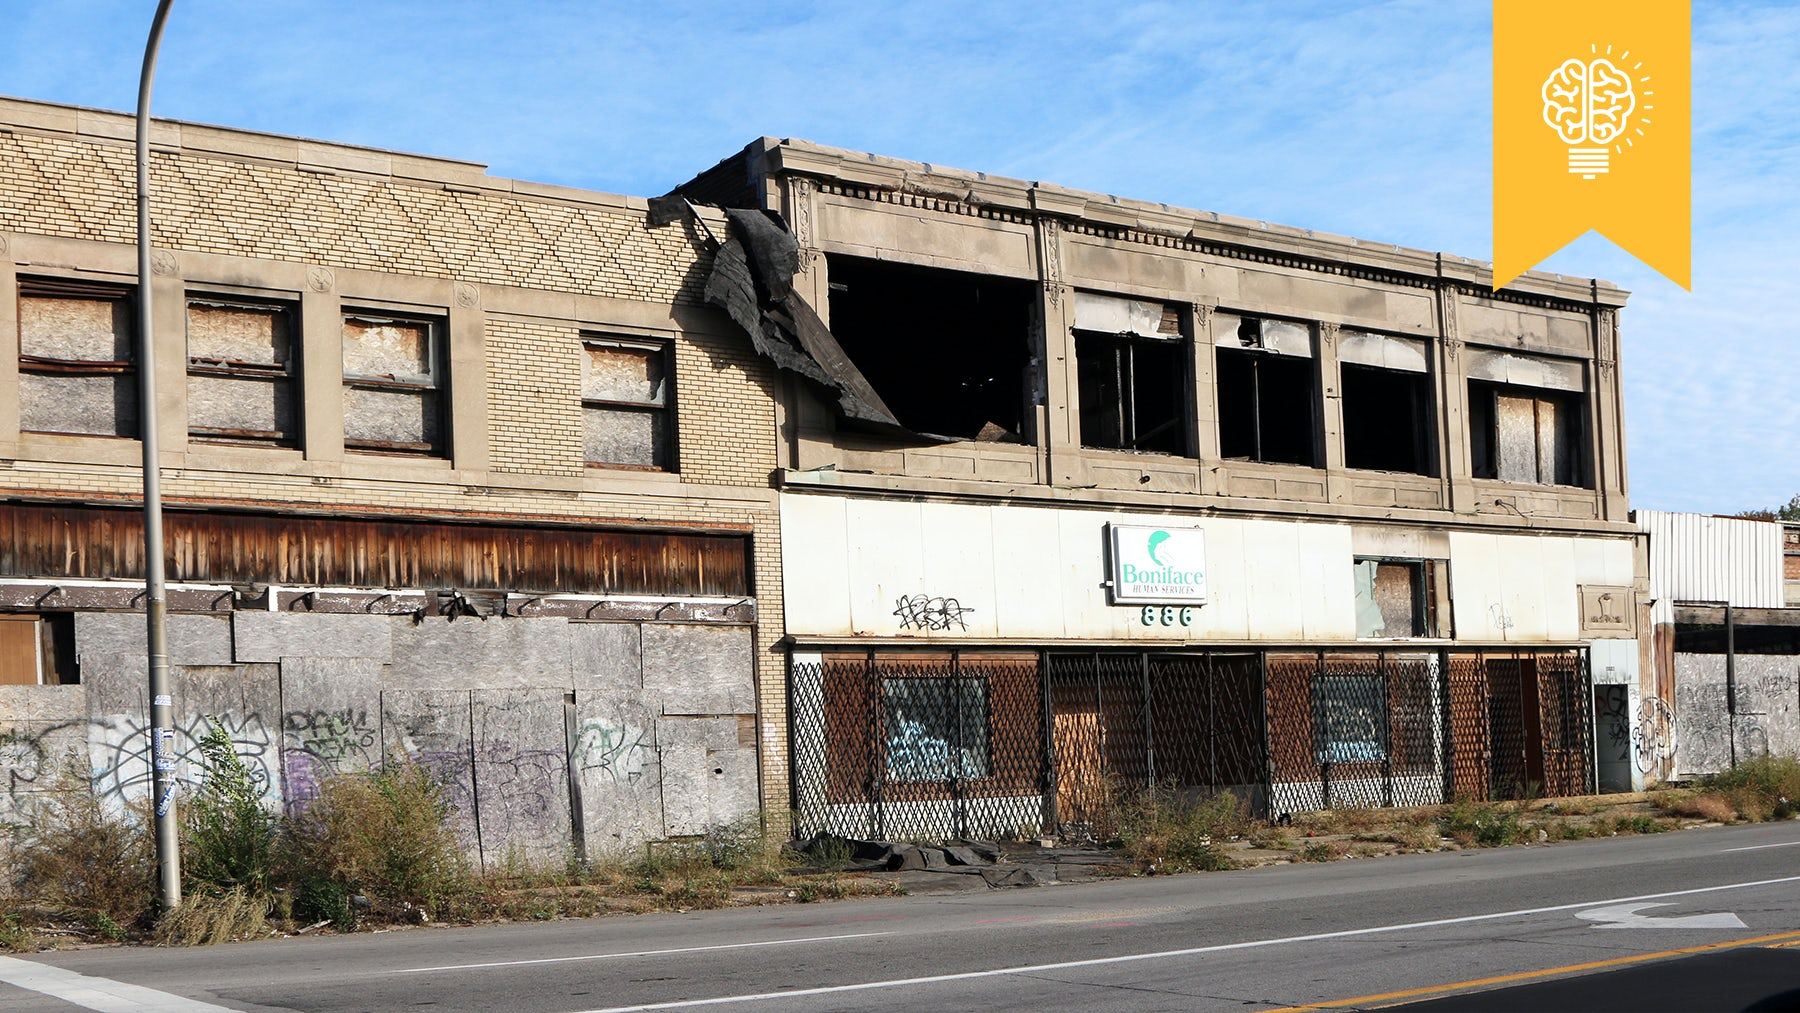 Deserted commercial buildings along one of Detroit's major streets | Source: Shutterstock